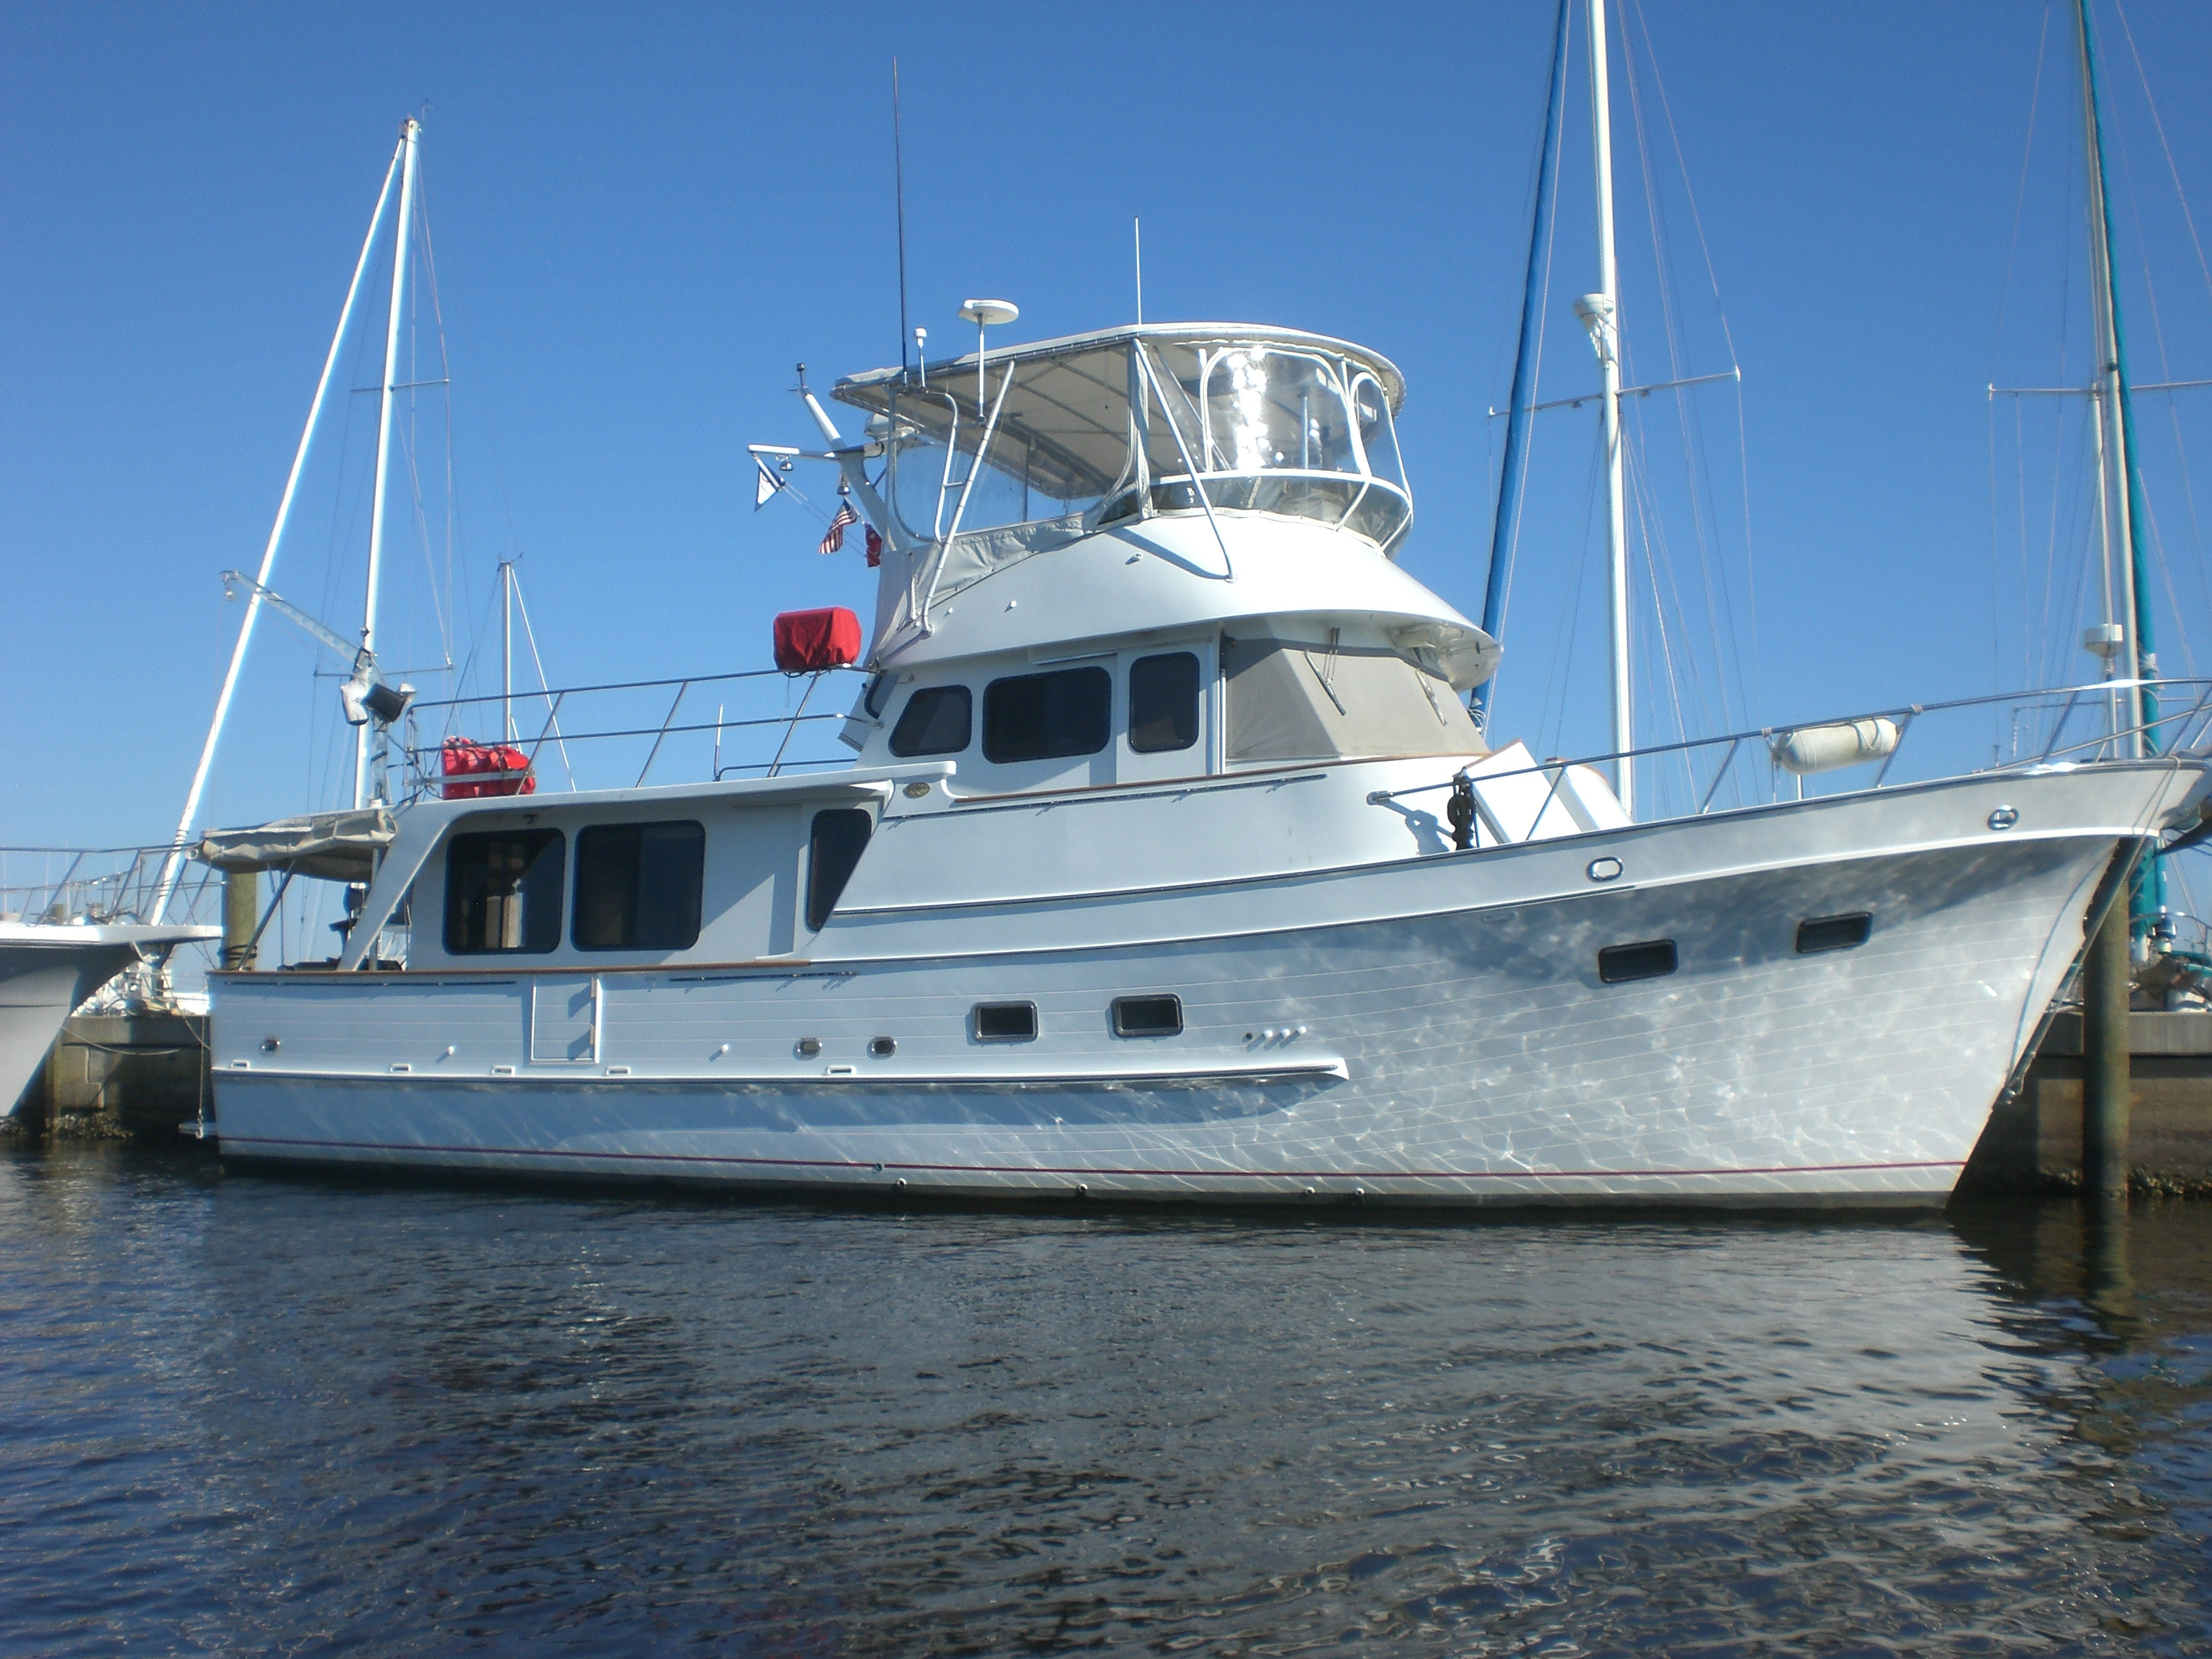 De Fever 49 Pilothouse